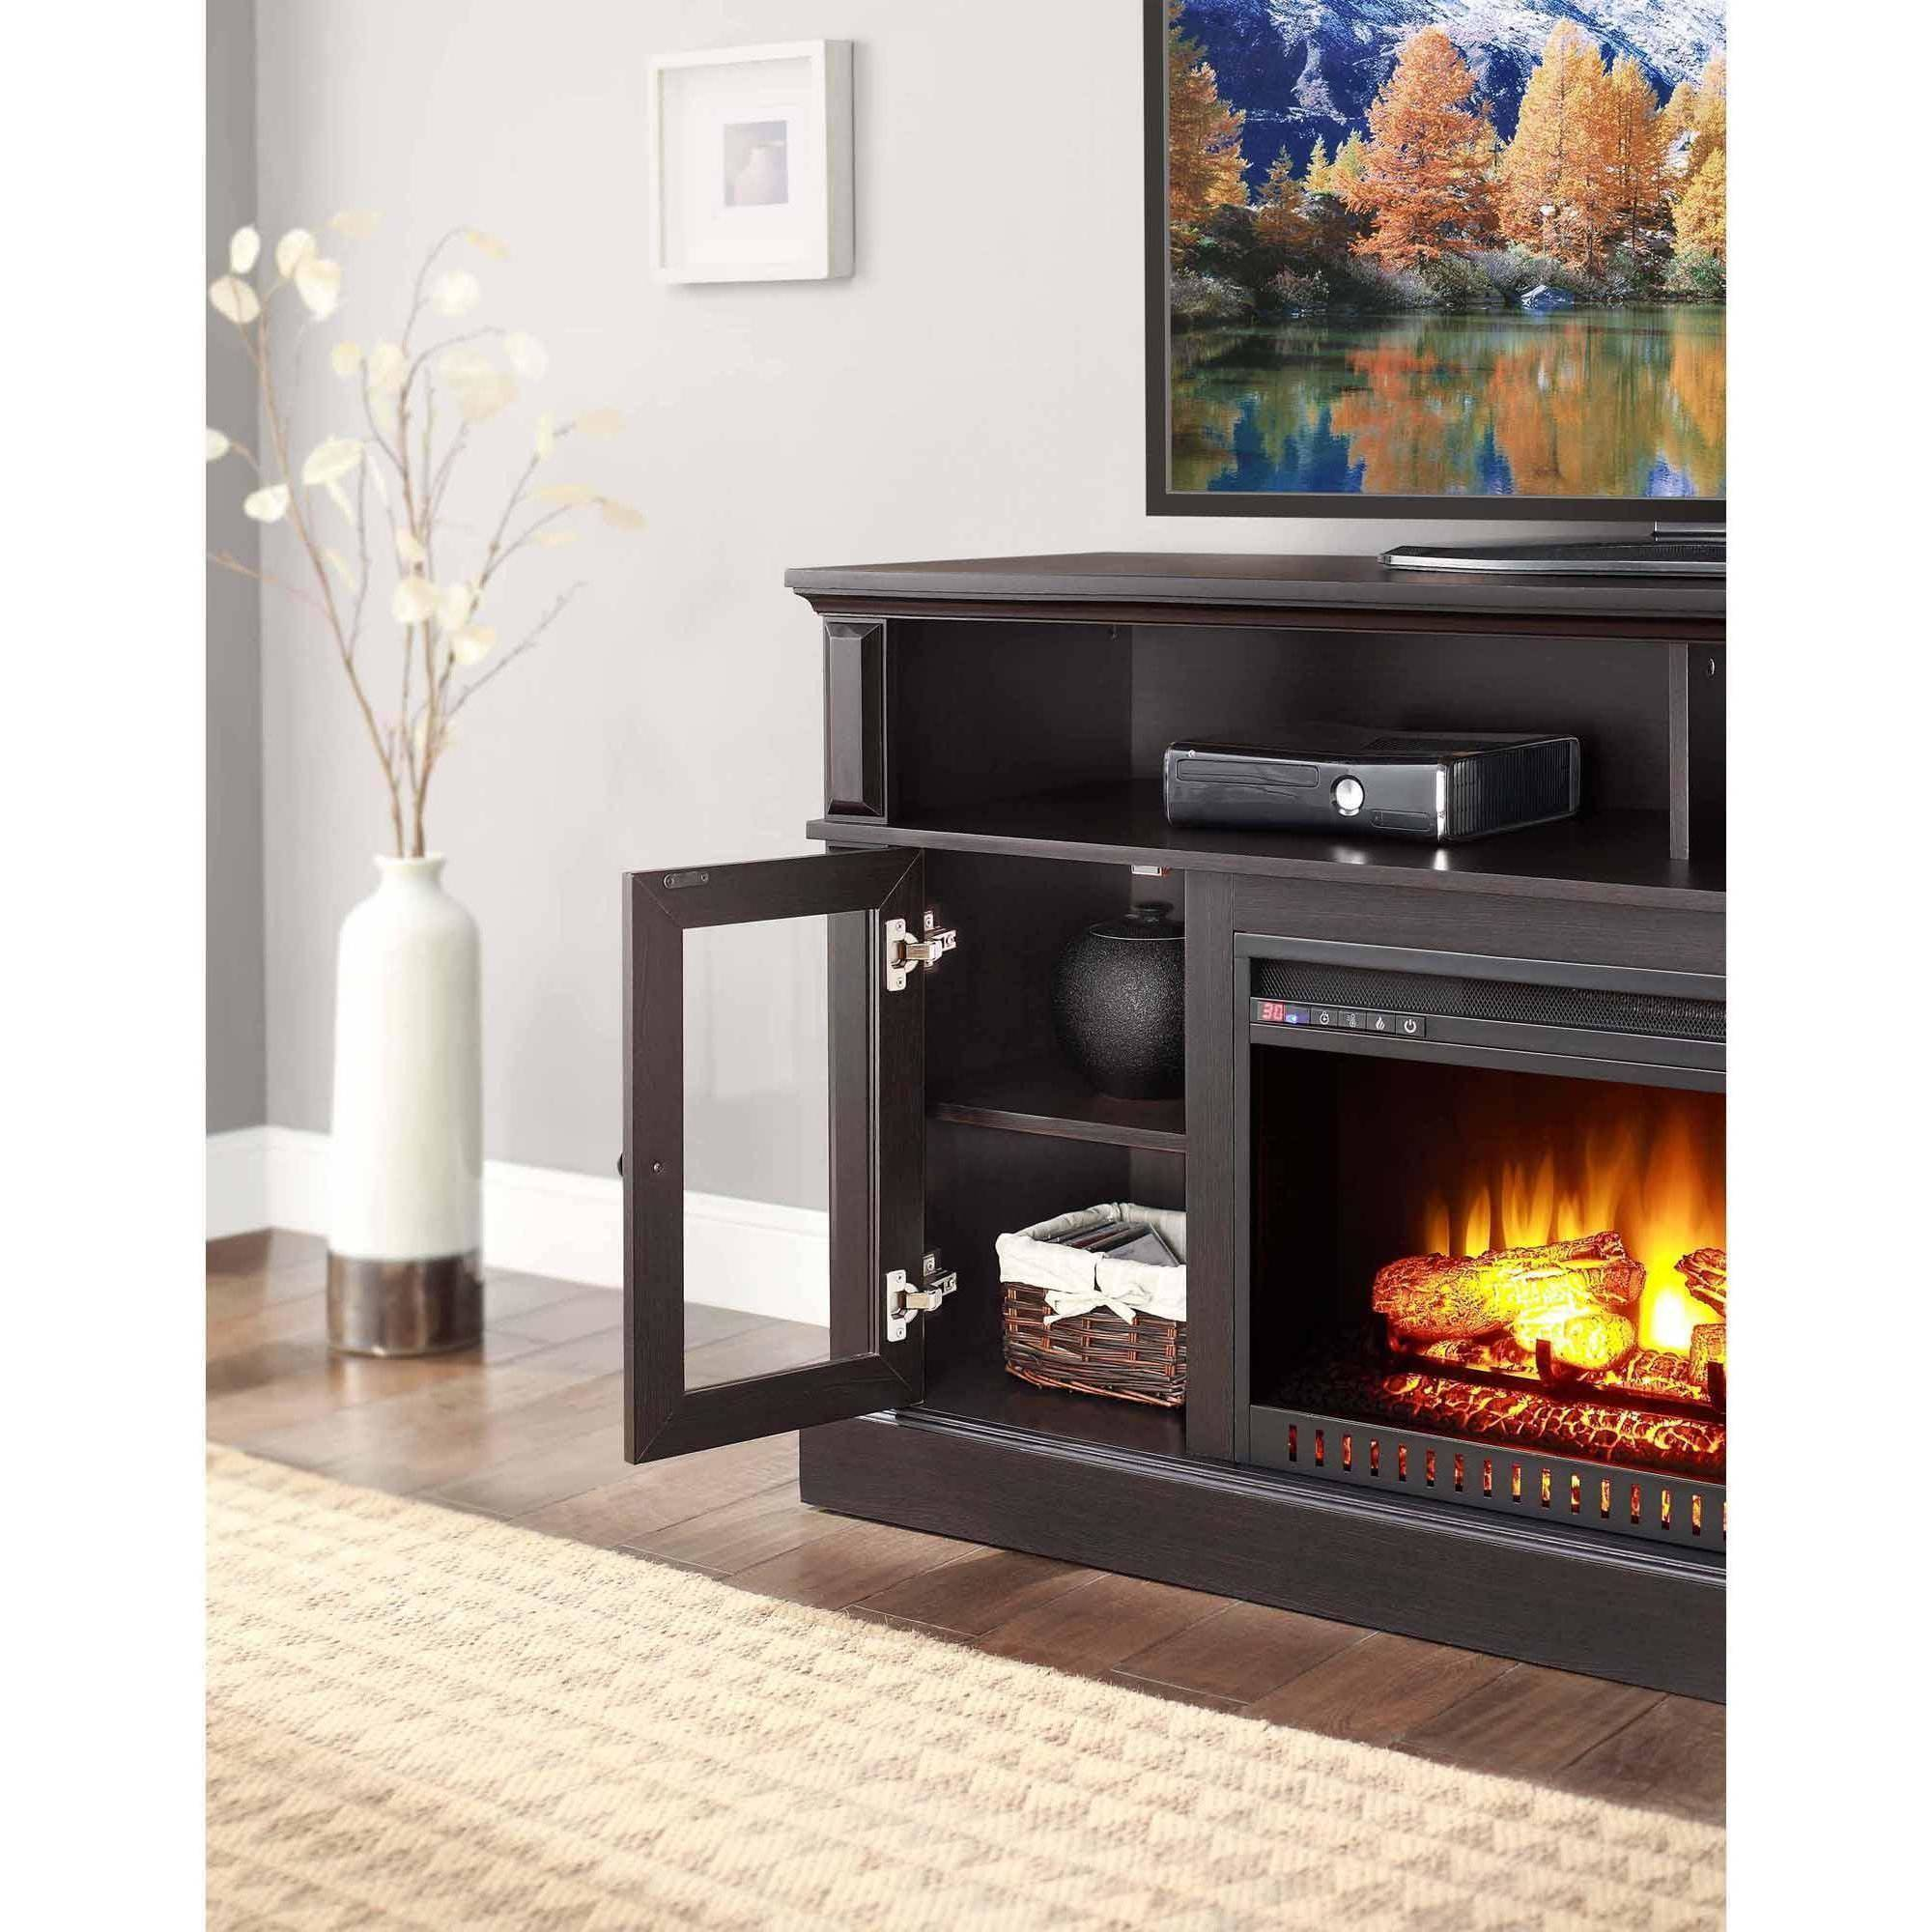 Fireplace Tv Stand 70 Quot Media Entertainment Storage Wood